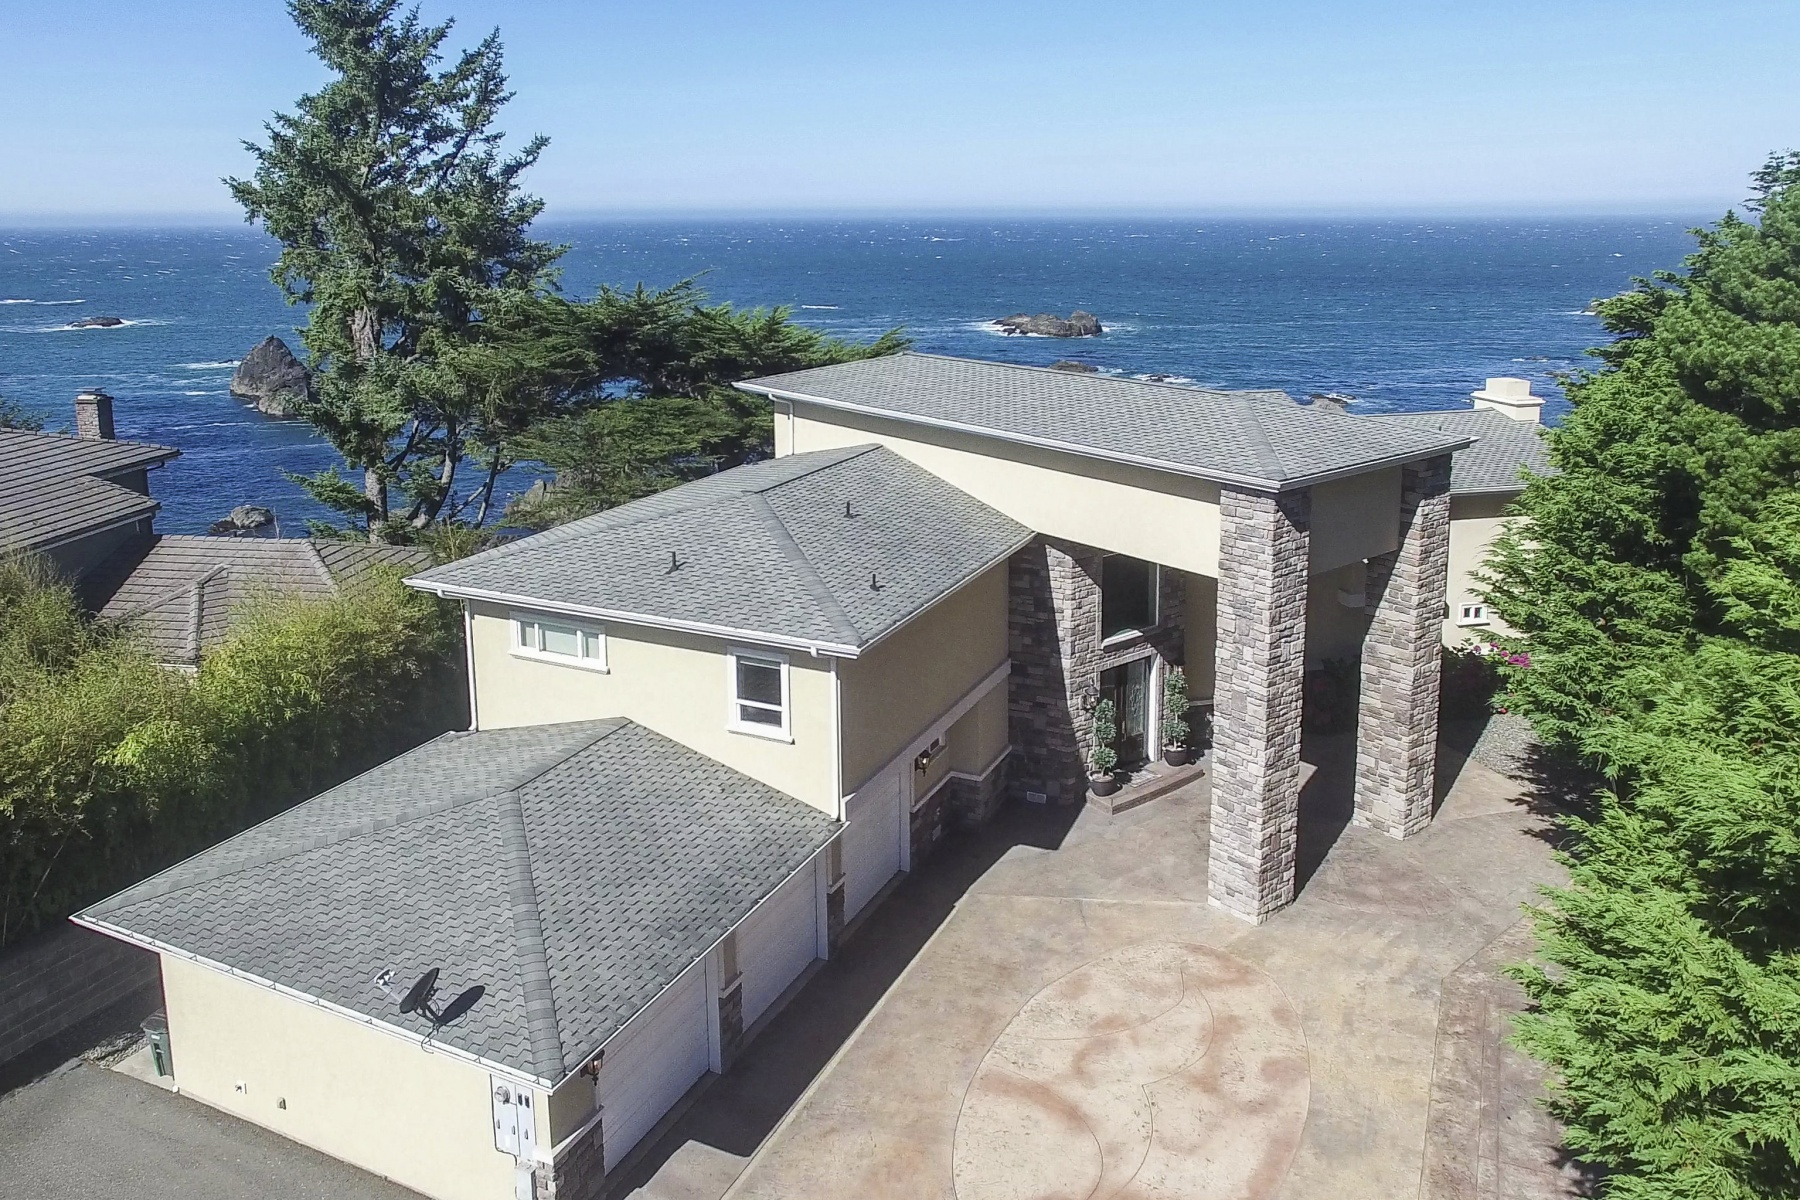 Single Family Home for Sale at 1107 BYRTUS PL, BROOKINGS Brookings, Oregon 97415 United States